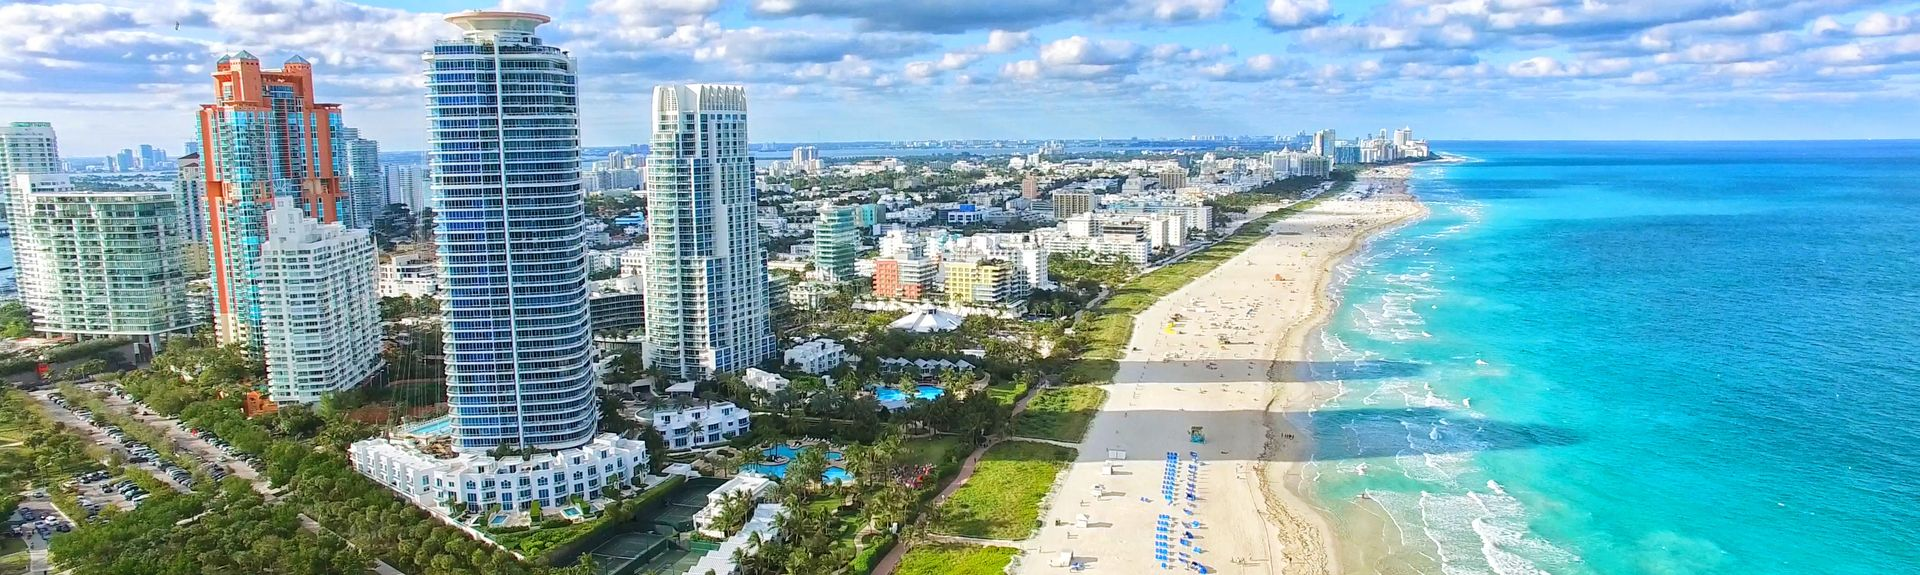 South Beach, Miami Beach, Florida, United States of America